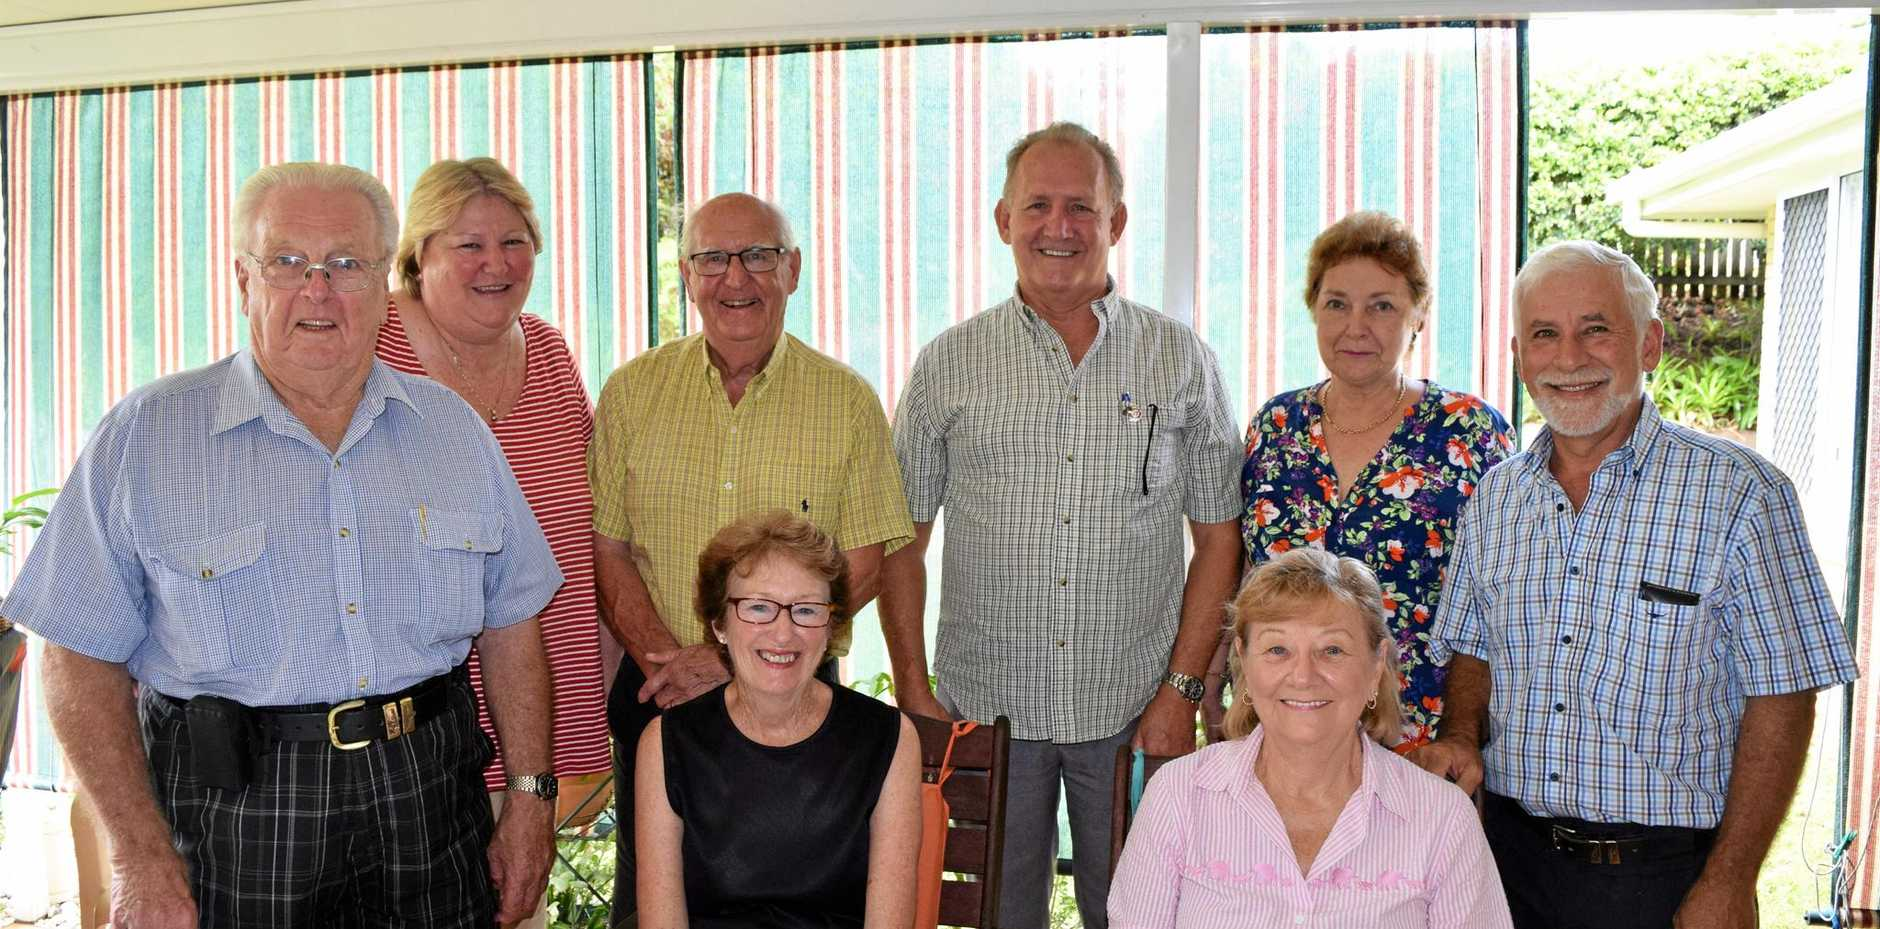 Members of the Nambour Branch of the RAAFA are celebrating 70 years this year.